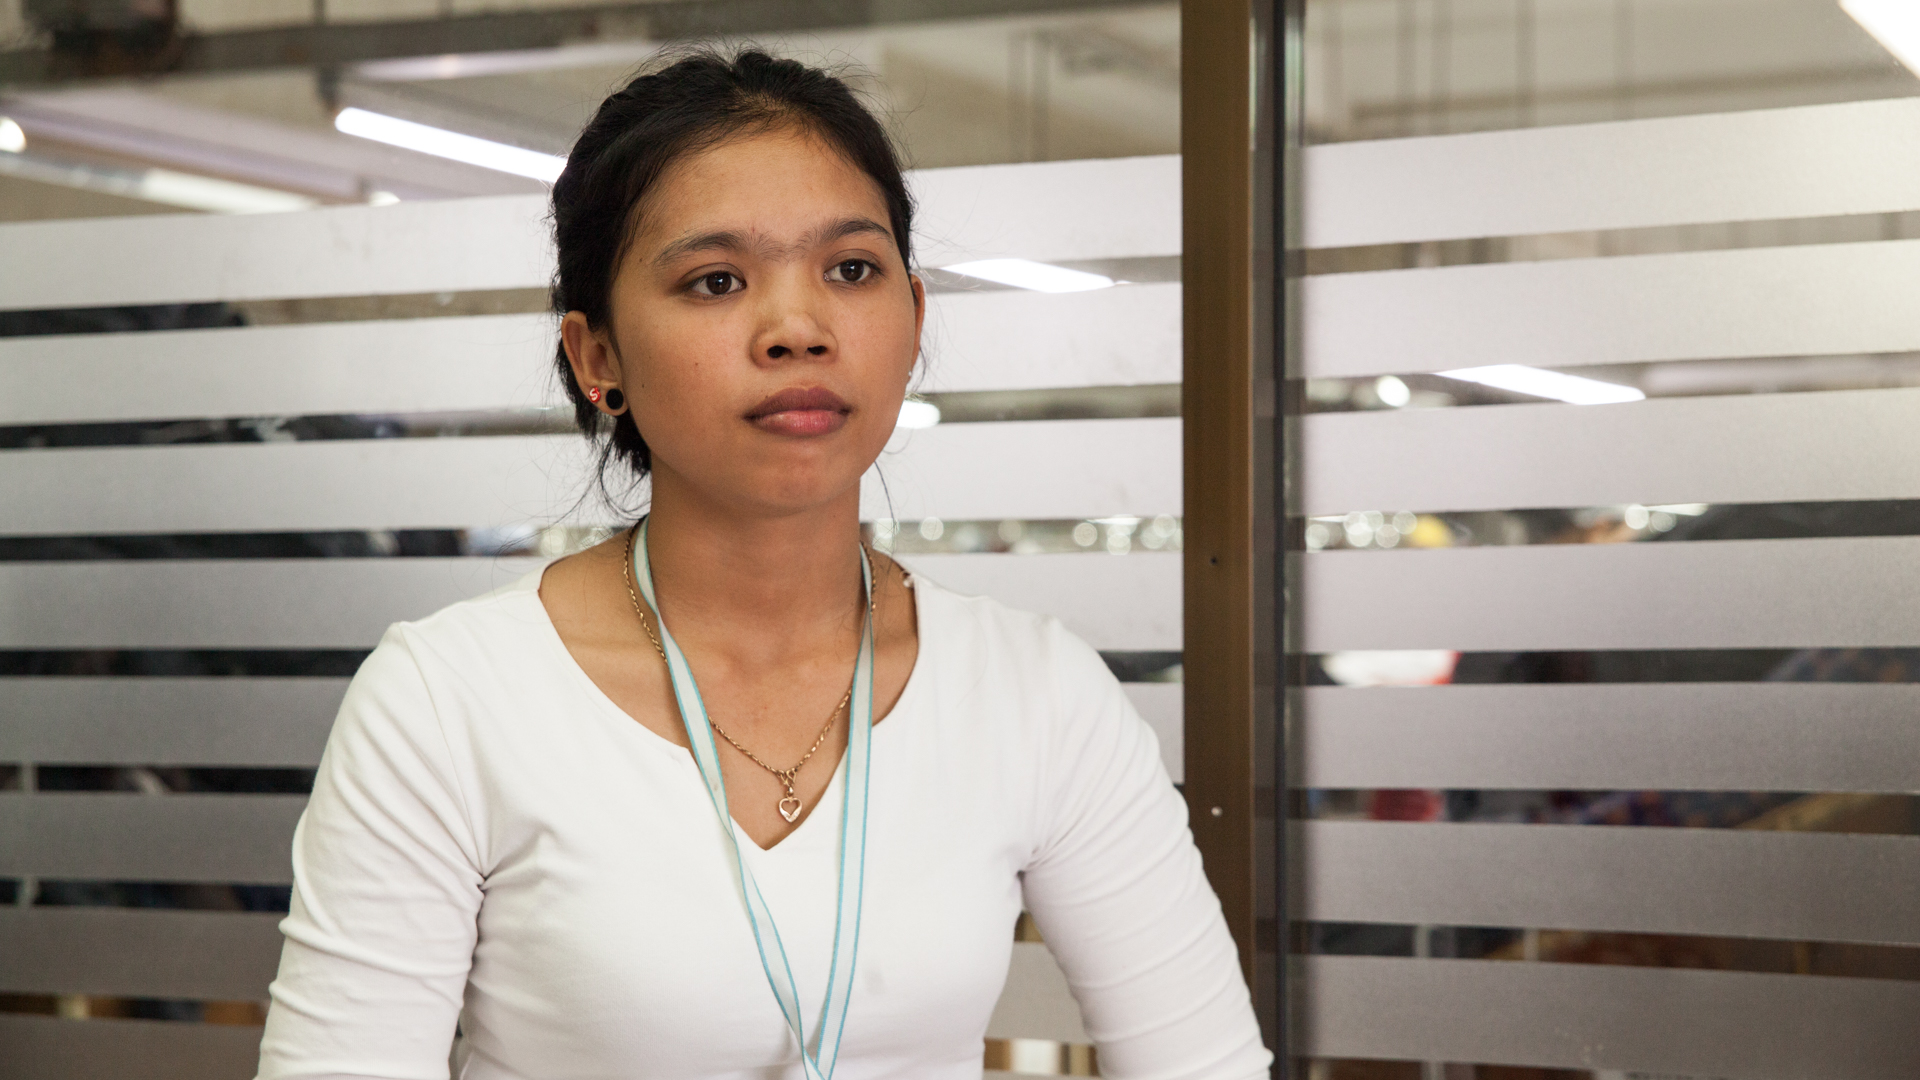 care stories nimol is a 20 year old w from takeo province who moved to phnom penh her husband to work in a garment factory nimol has been concerned about